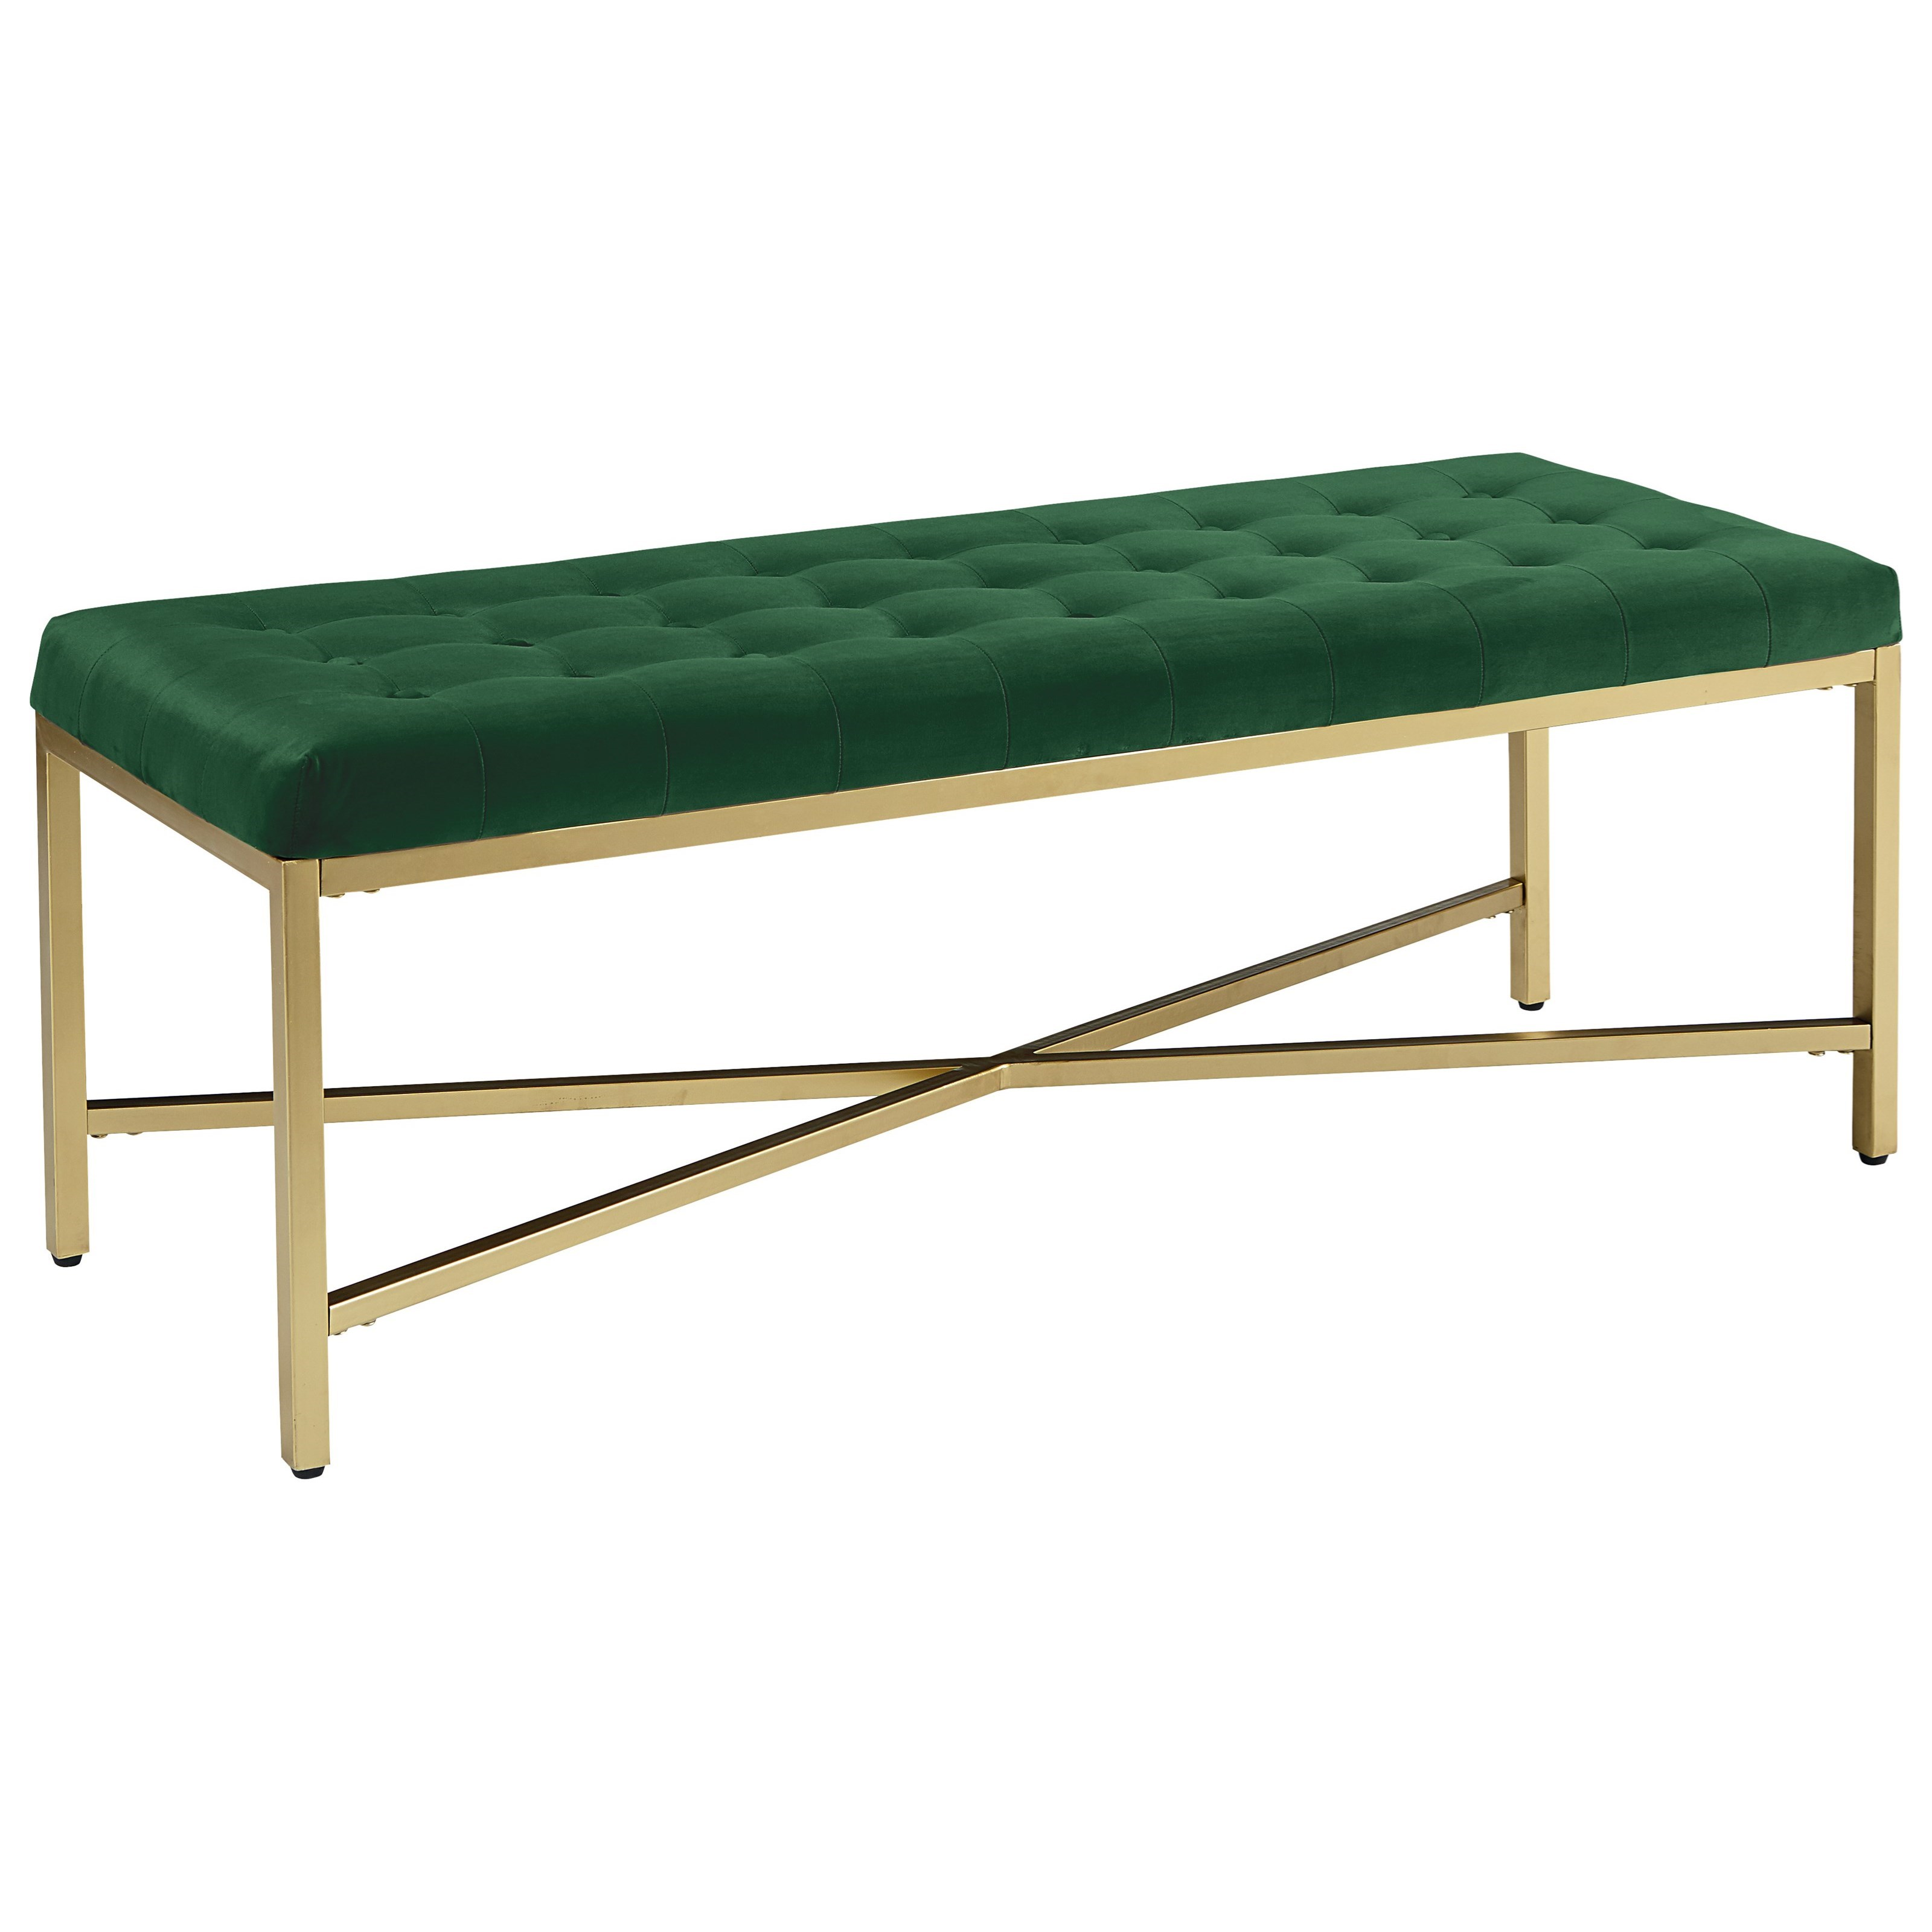 Magnolia Home By Joanna Gaines Modern Upholstered Bench